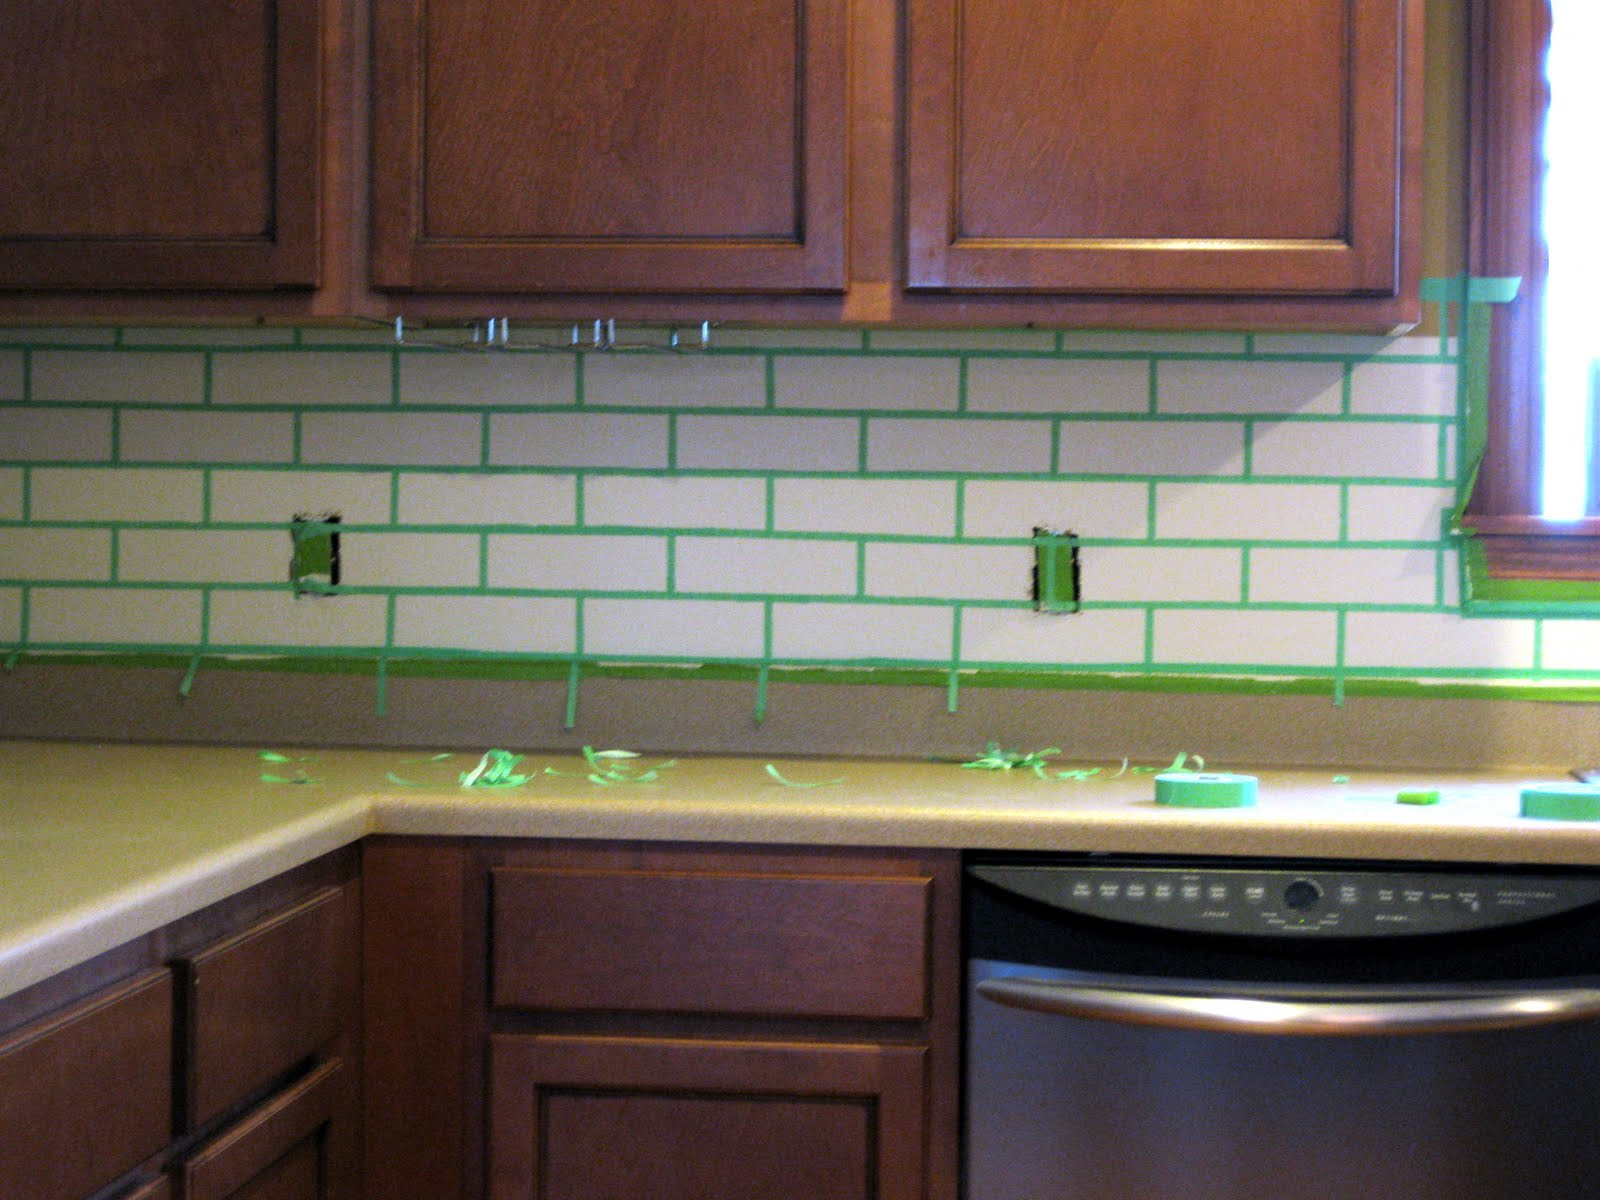 Brick Backsplash In Kitchen Mixer Christal 39s Reality Daydream